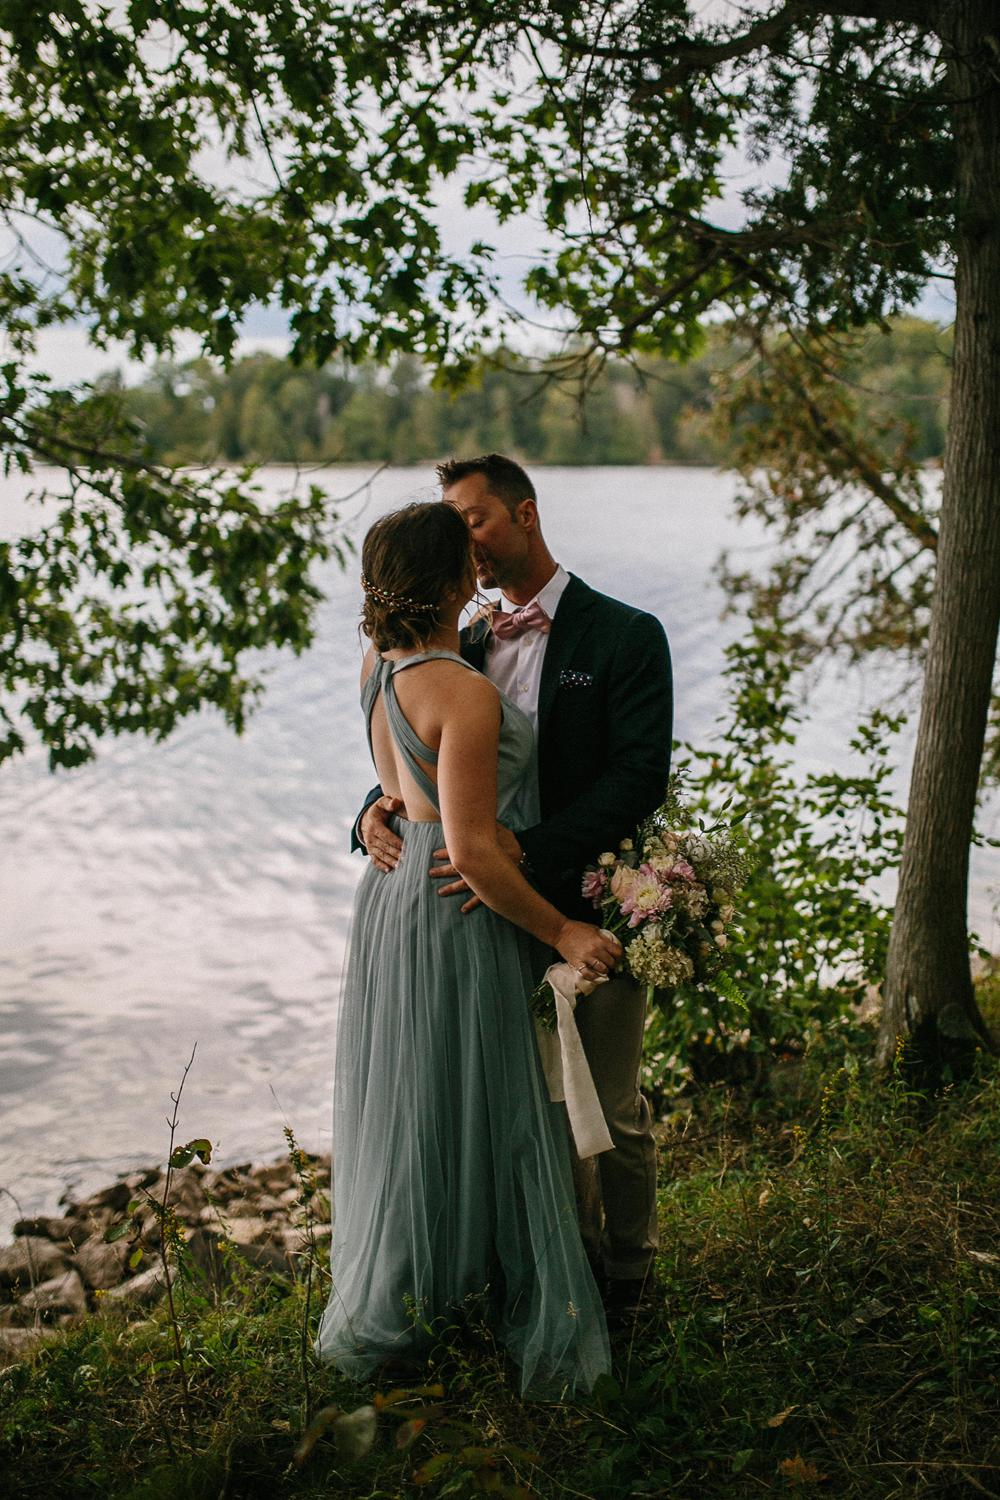 kerry ford photography - small intimate backyard rideau lake island wedding perth ontario-128.jpg